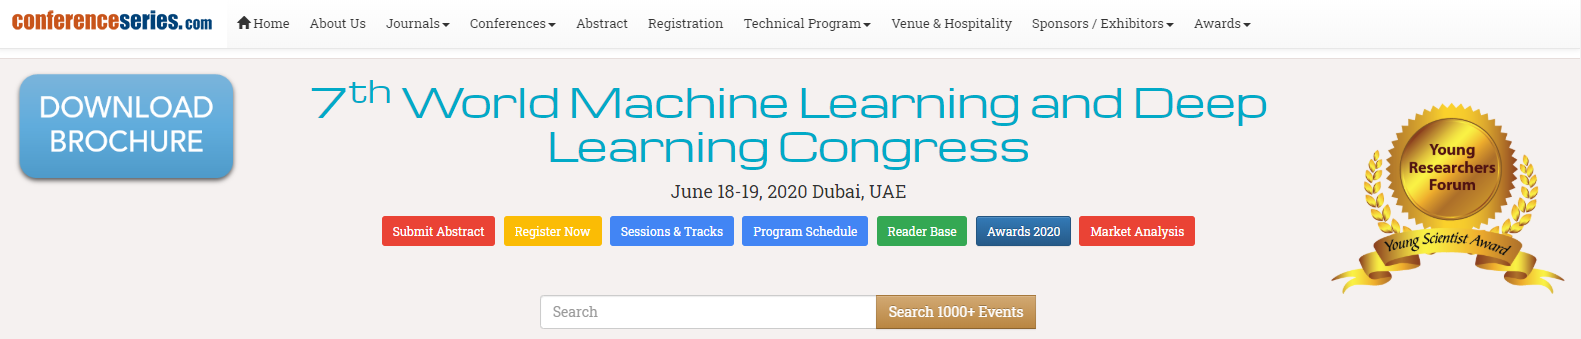 world machine learning and deep learning congress